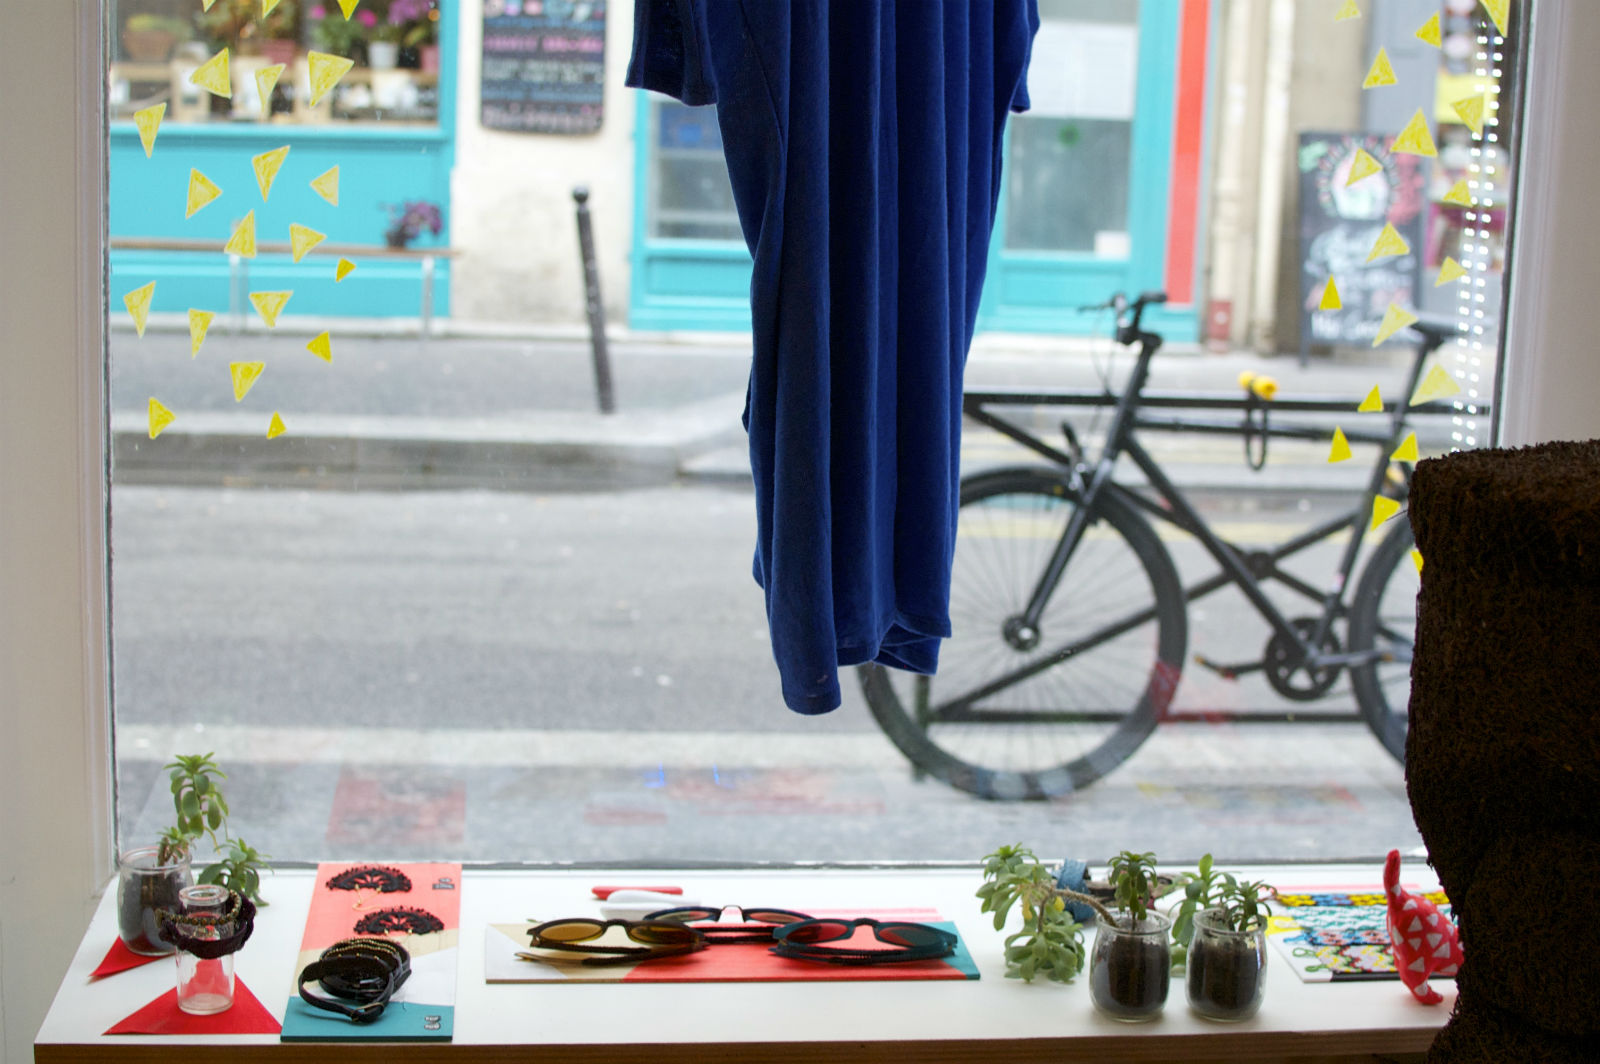 HiP Paris blog. Ambrym. Bright, colorful vitrine reflecting the playfulness of the pieces.